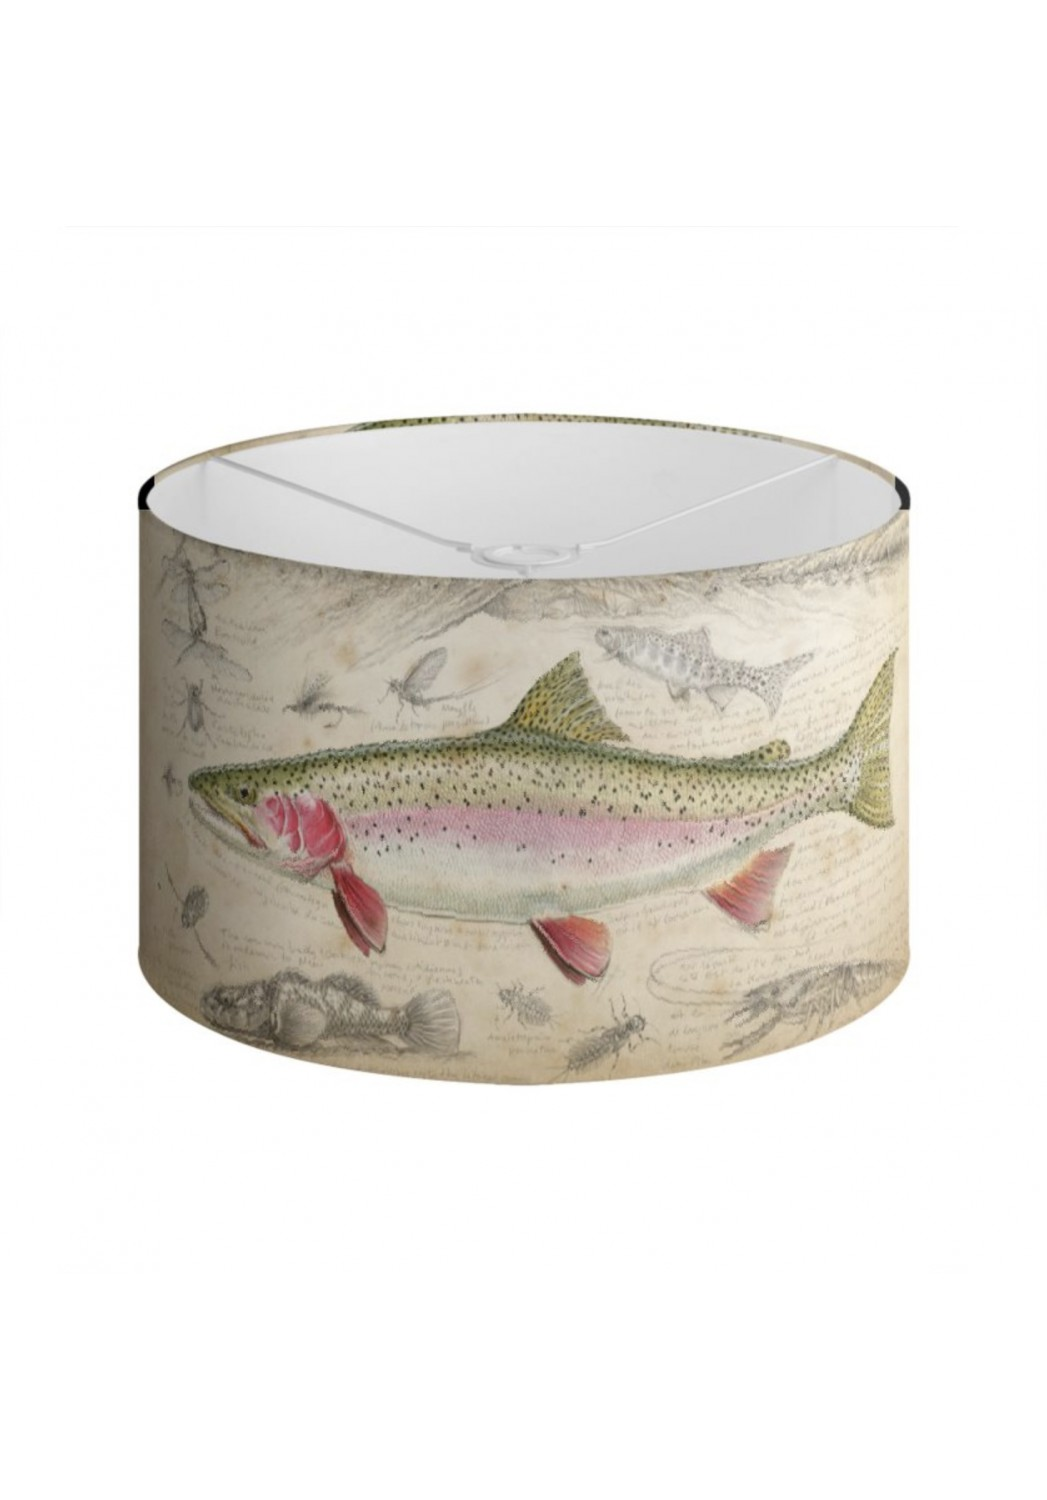 Marcello-art: Decoration accessoiries Lampshade 373 New Zealand rainbow trout